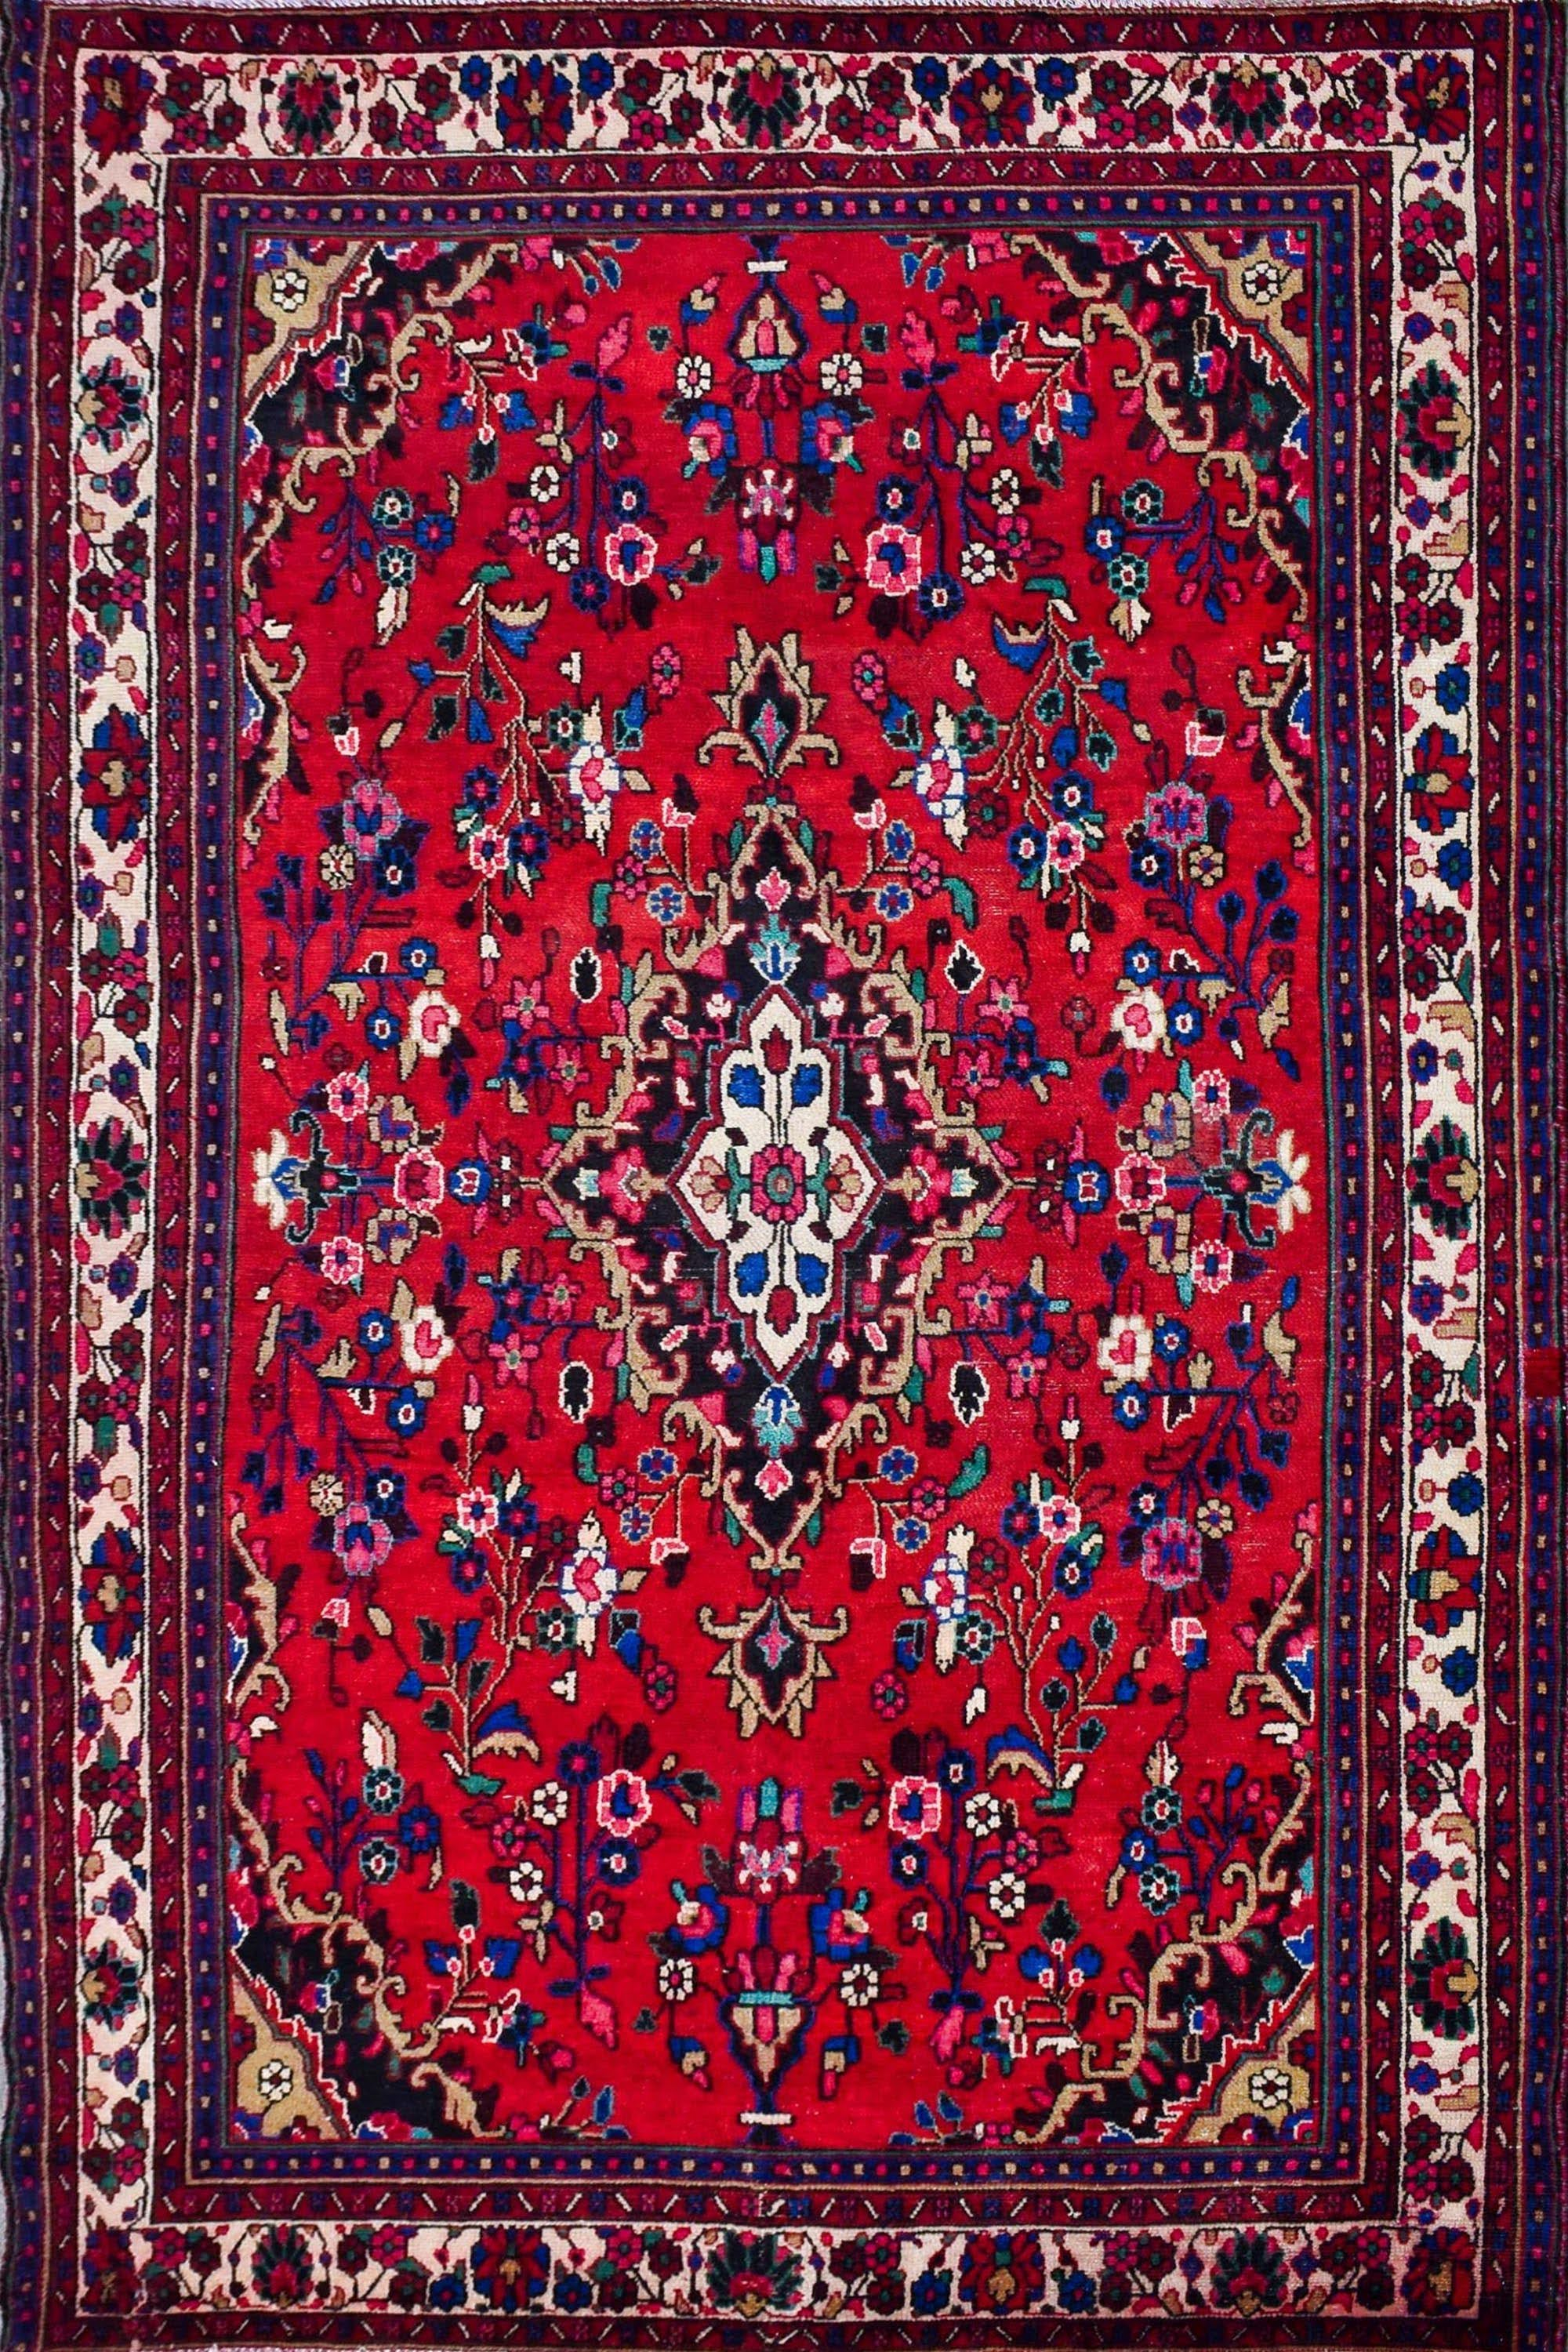 Hand Knotted Vintage Persian Shiraz Rug, 203 x 300 cm